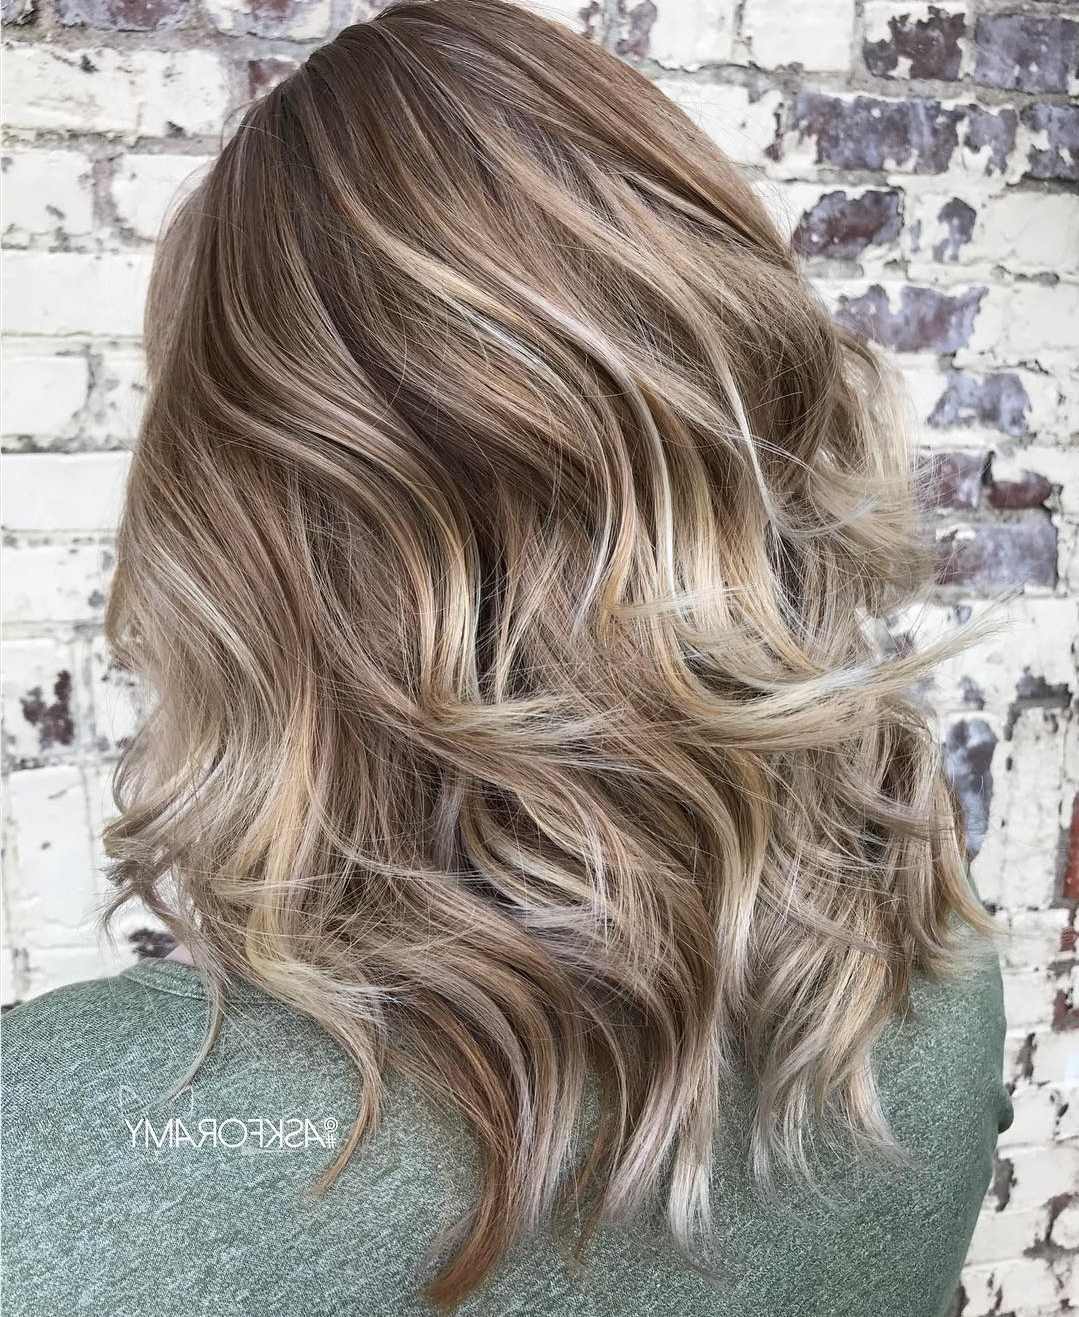 Trendy Mid Length Sliced Bronde Haircuts For 50 Fabulous Medium Length Layered Hairstyles – Hair Adviser (View 12 of 20)